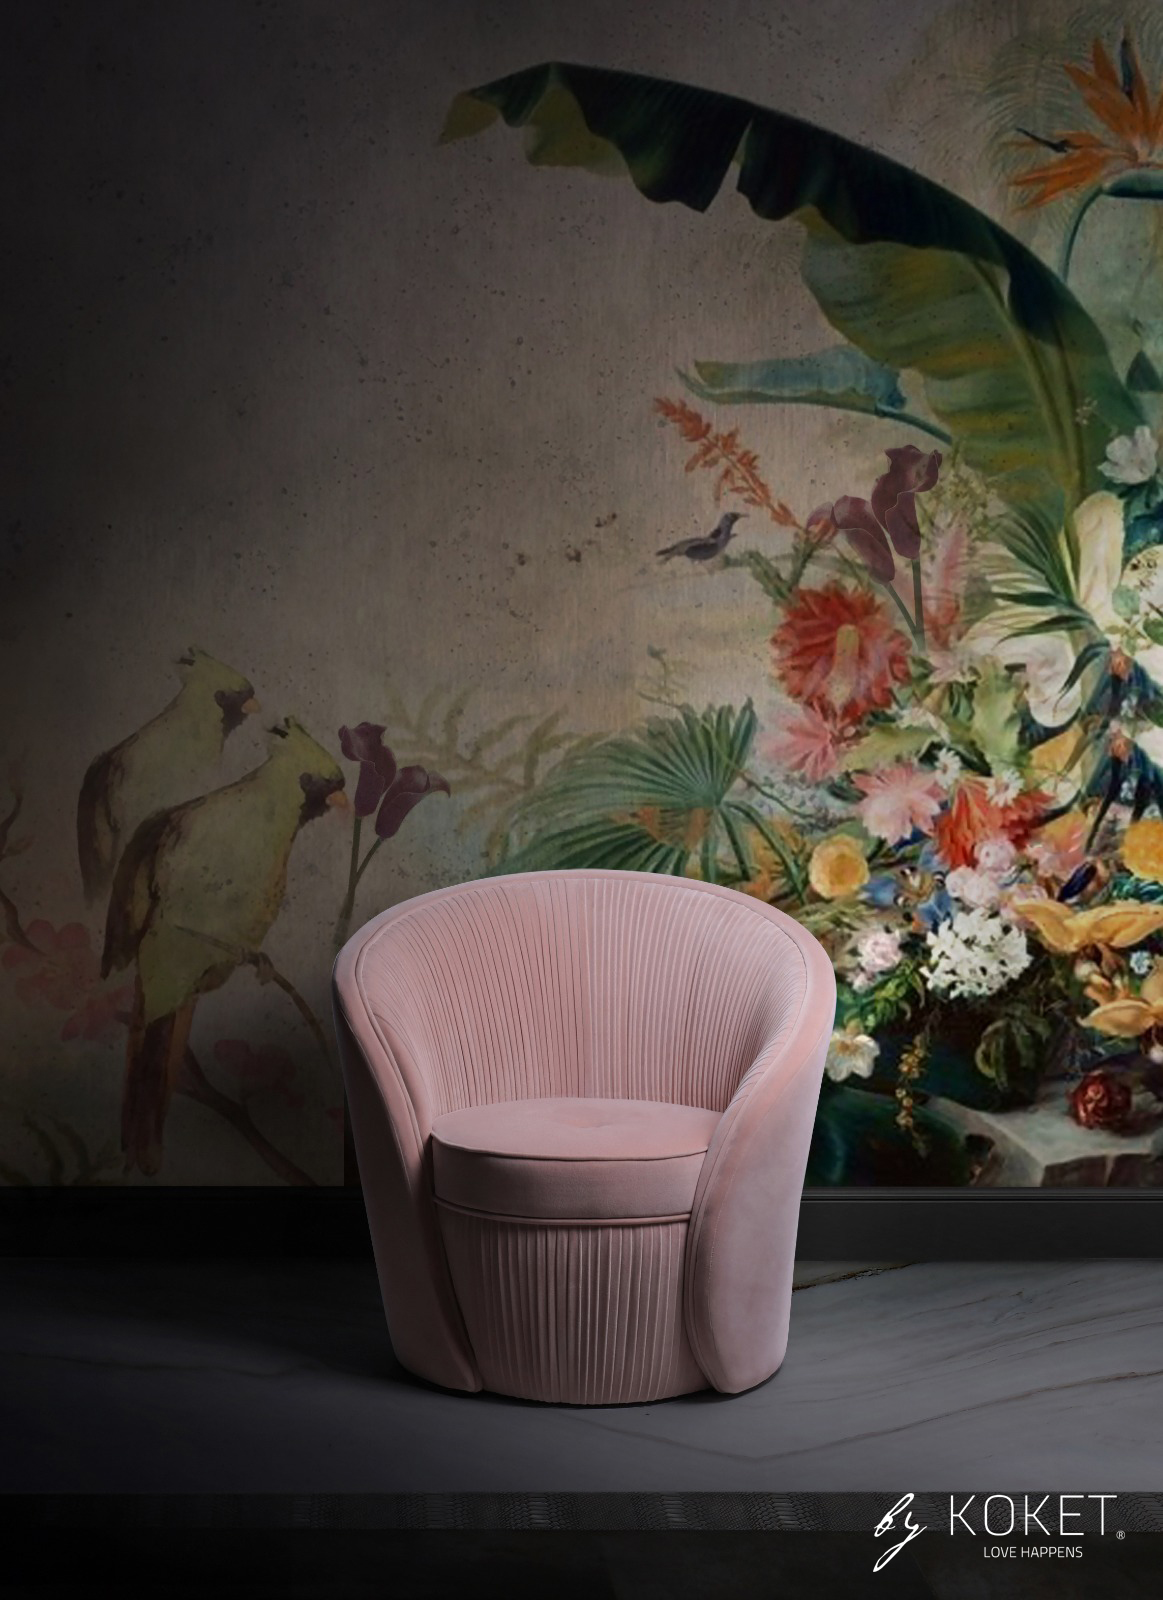 pink chair against a floral wallpaper background - bloom chair by koket - top new year's resolutions